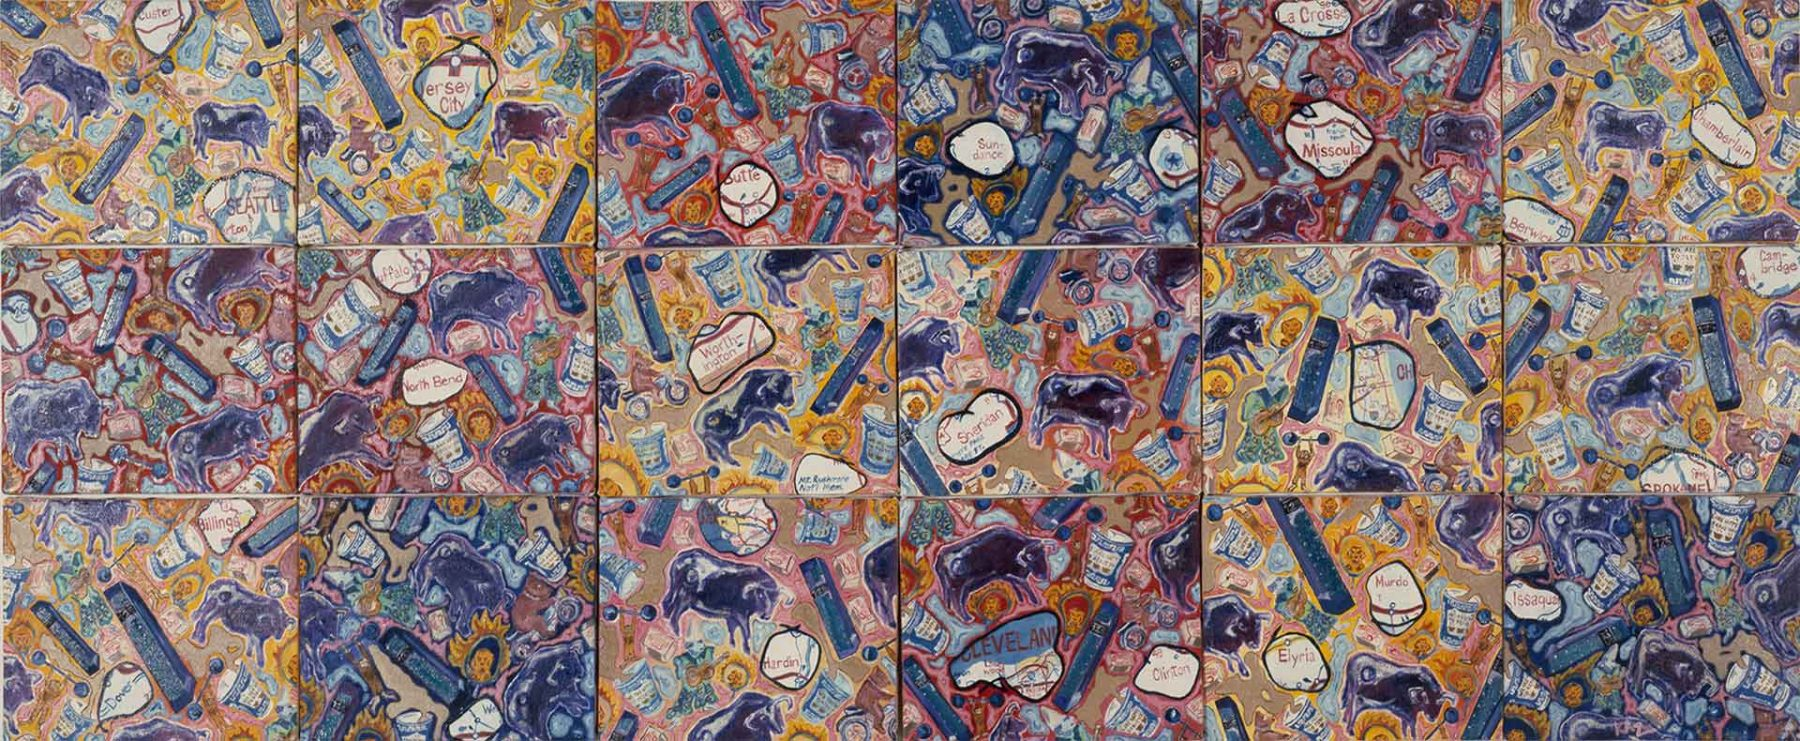 Circus (Puddles with Gum) (2001) oil on canvas (18 Panels) 0.69H x 1.62W meters